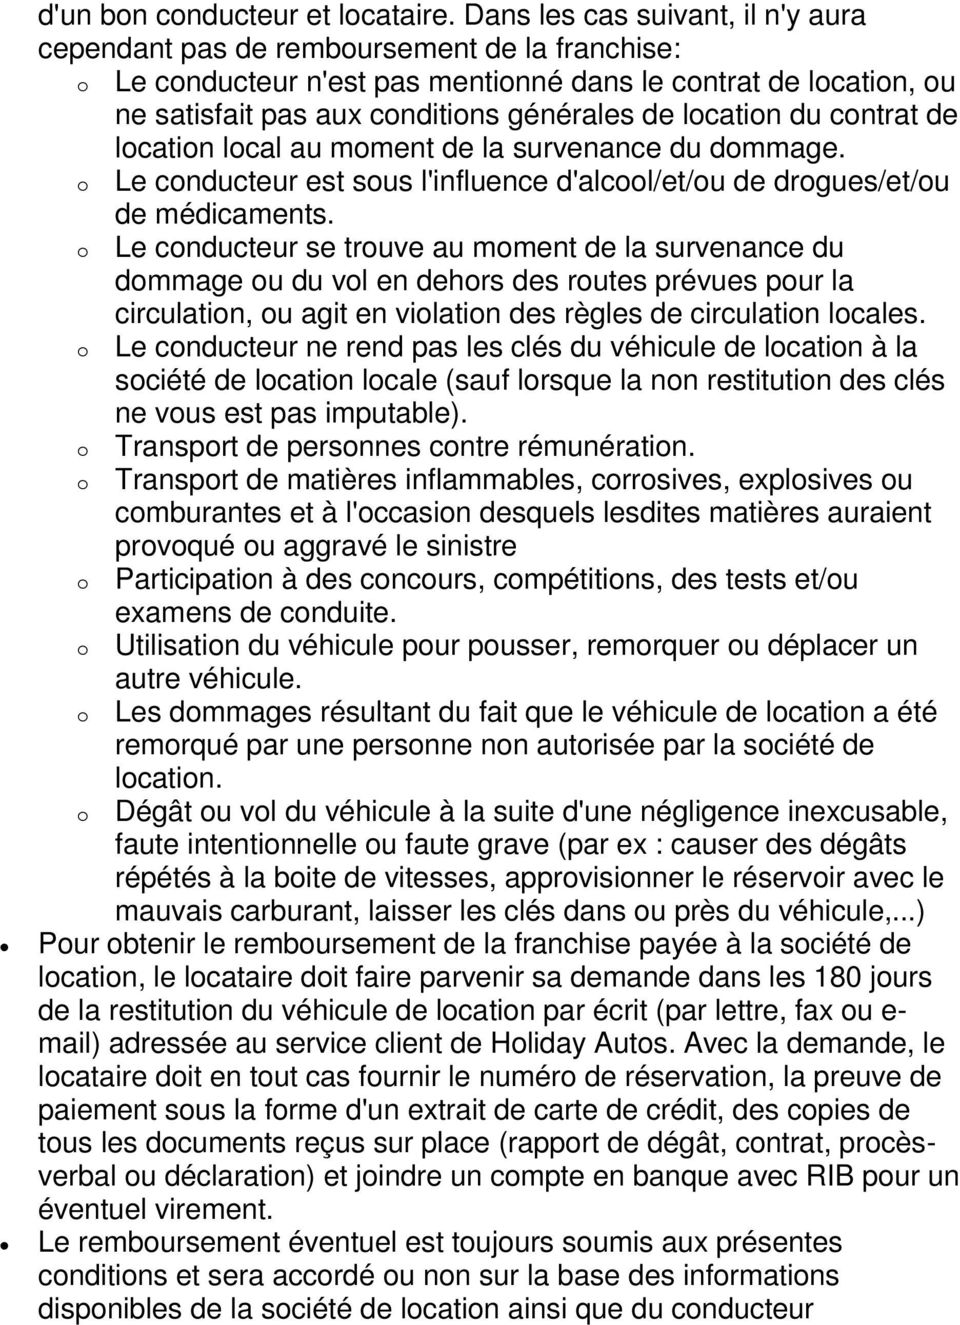 location du contrat de location local au moment de la survenance du dommage. o Le conducteur est sous l'influence d'alcool/et/ou de drogues/et/ou de médicaments.